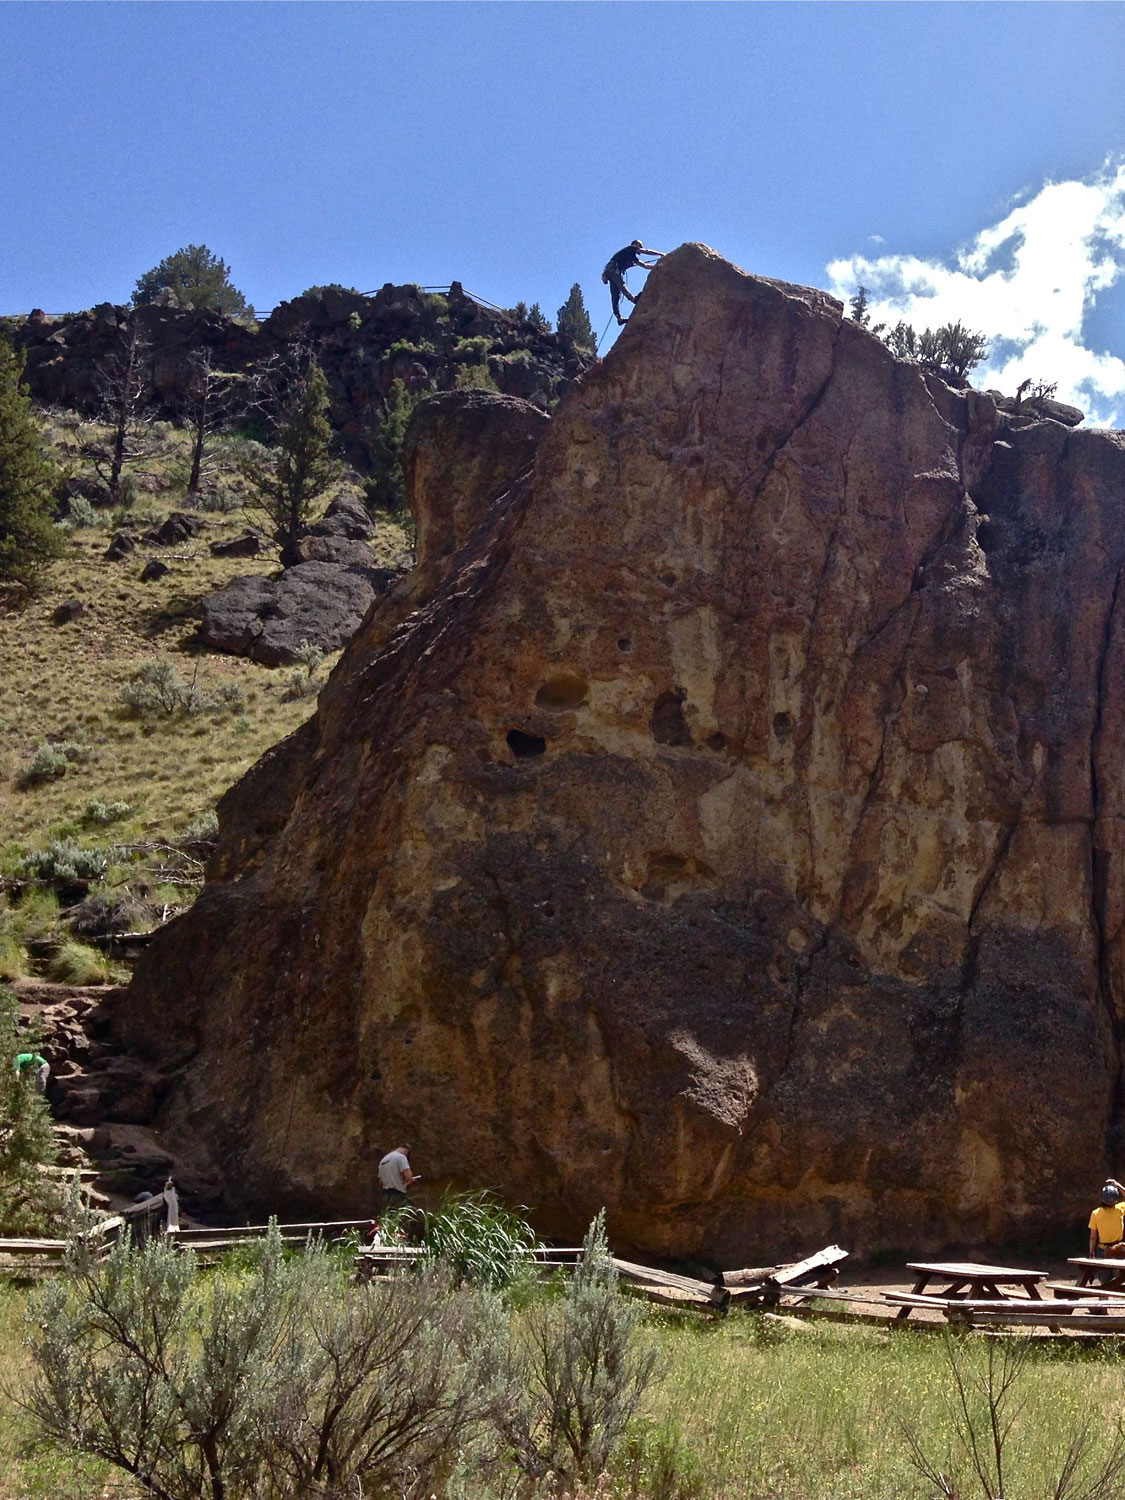 The start of the Rope-de-Dope Trail emerges to the left of the giant climbing rock block that bears its name at Smith Rock State Park.